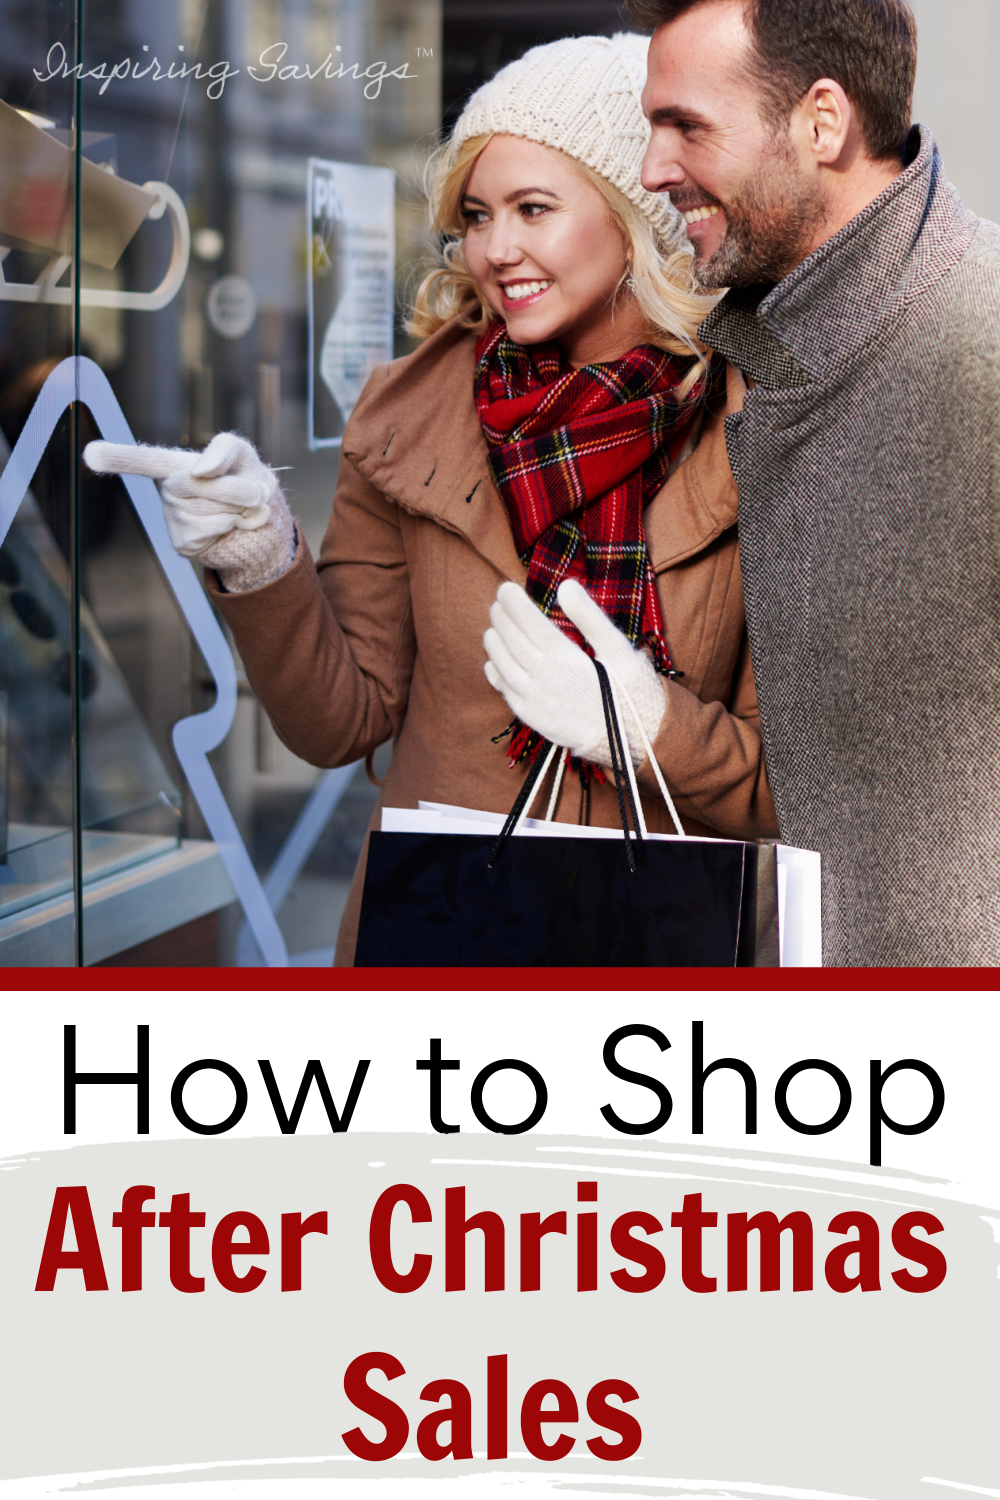 What To Expect After Christmas Sales Sales More Sales